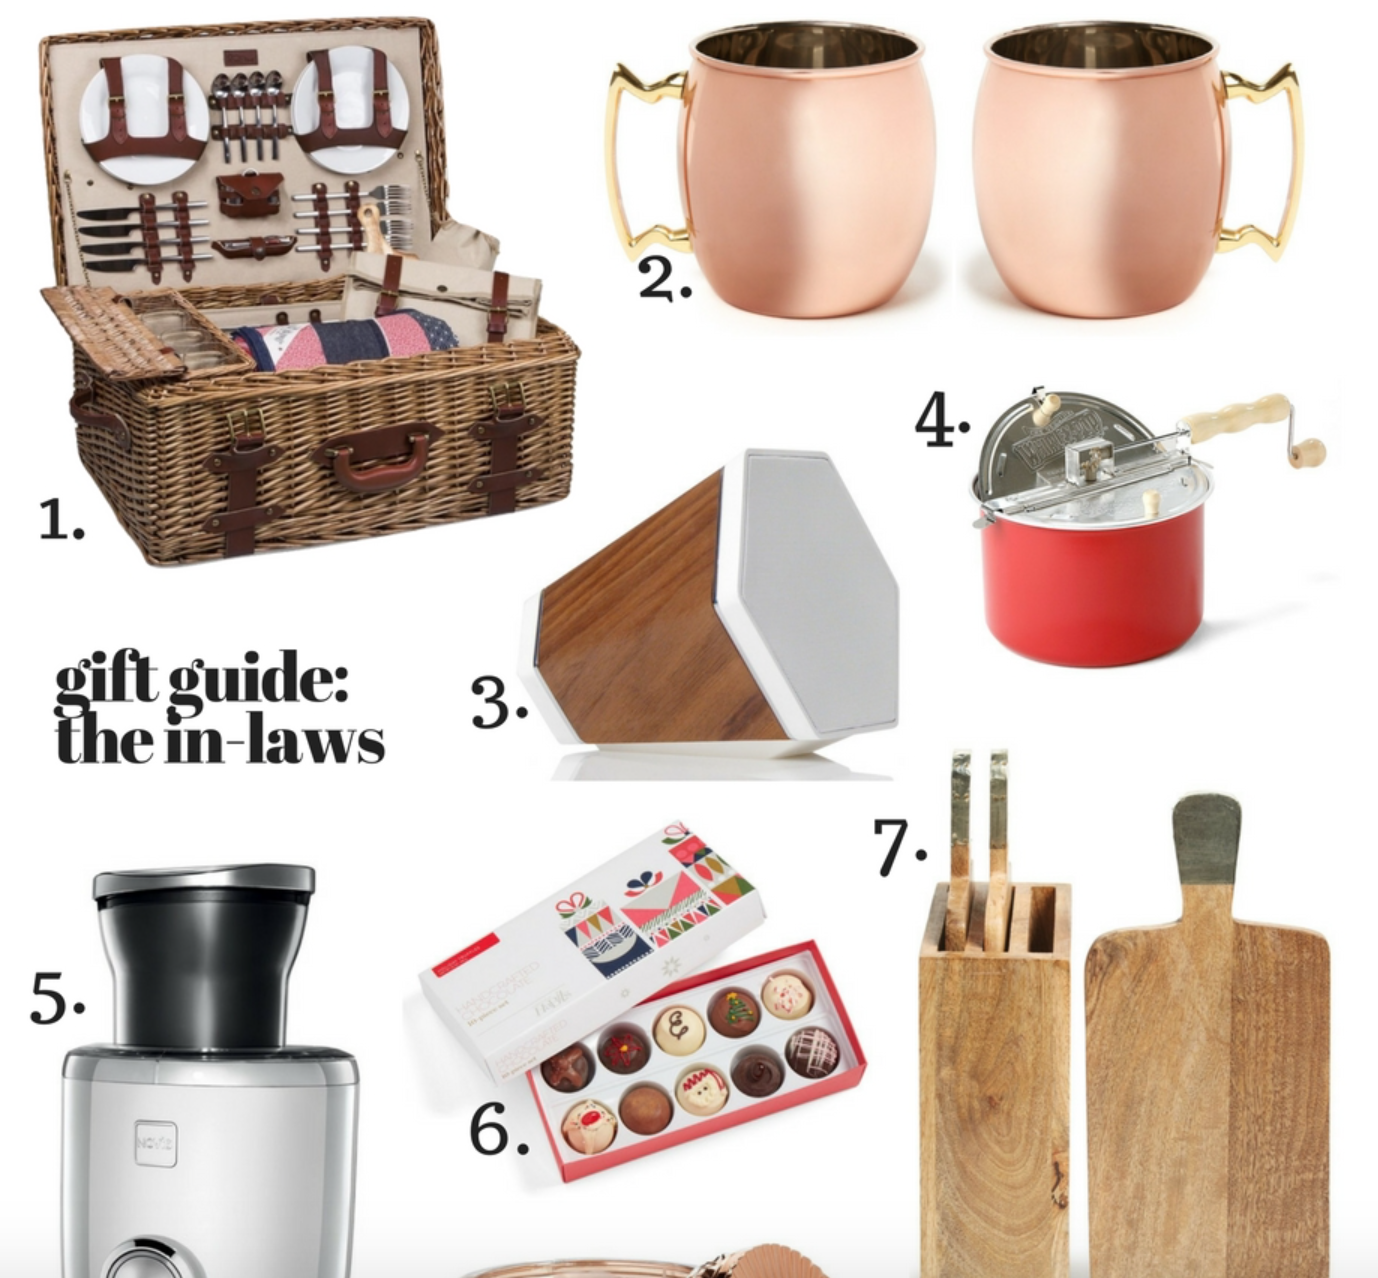 Gift Guide: The In-Laws